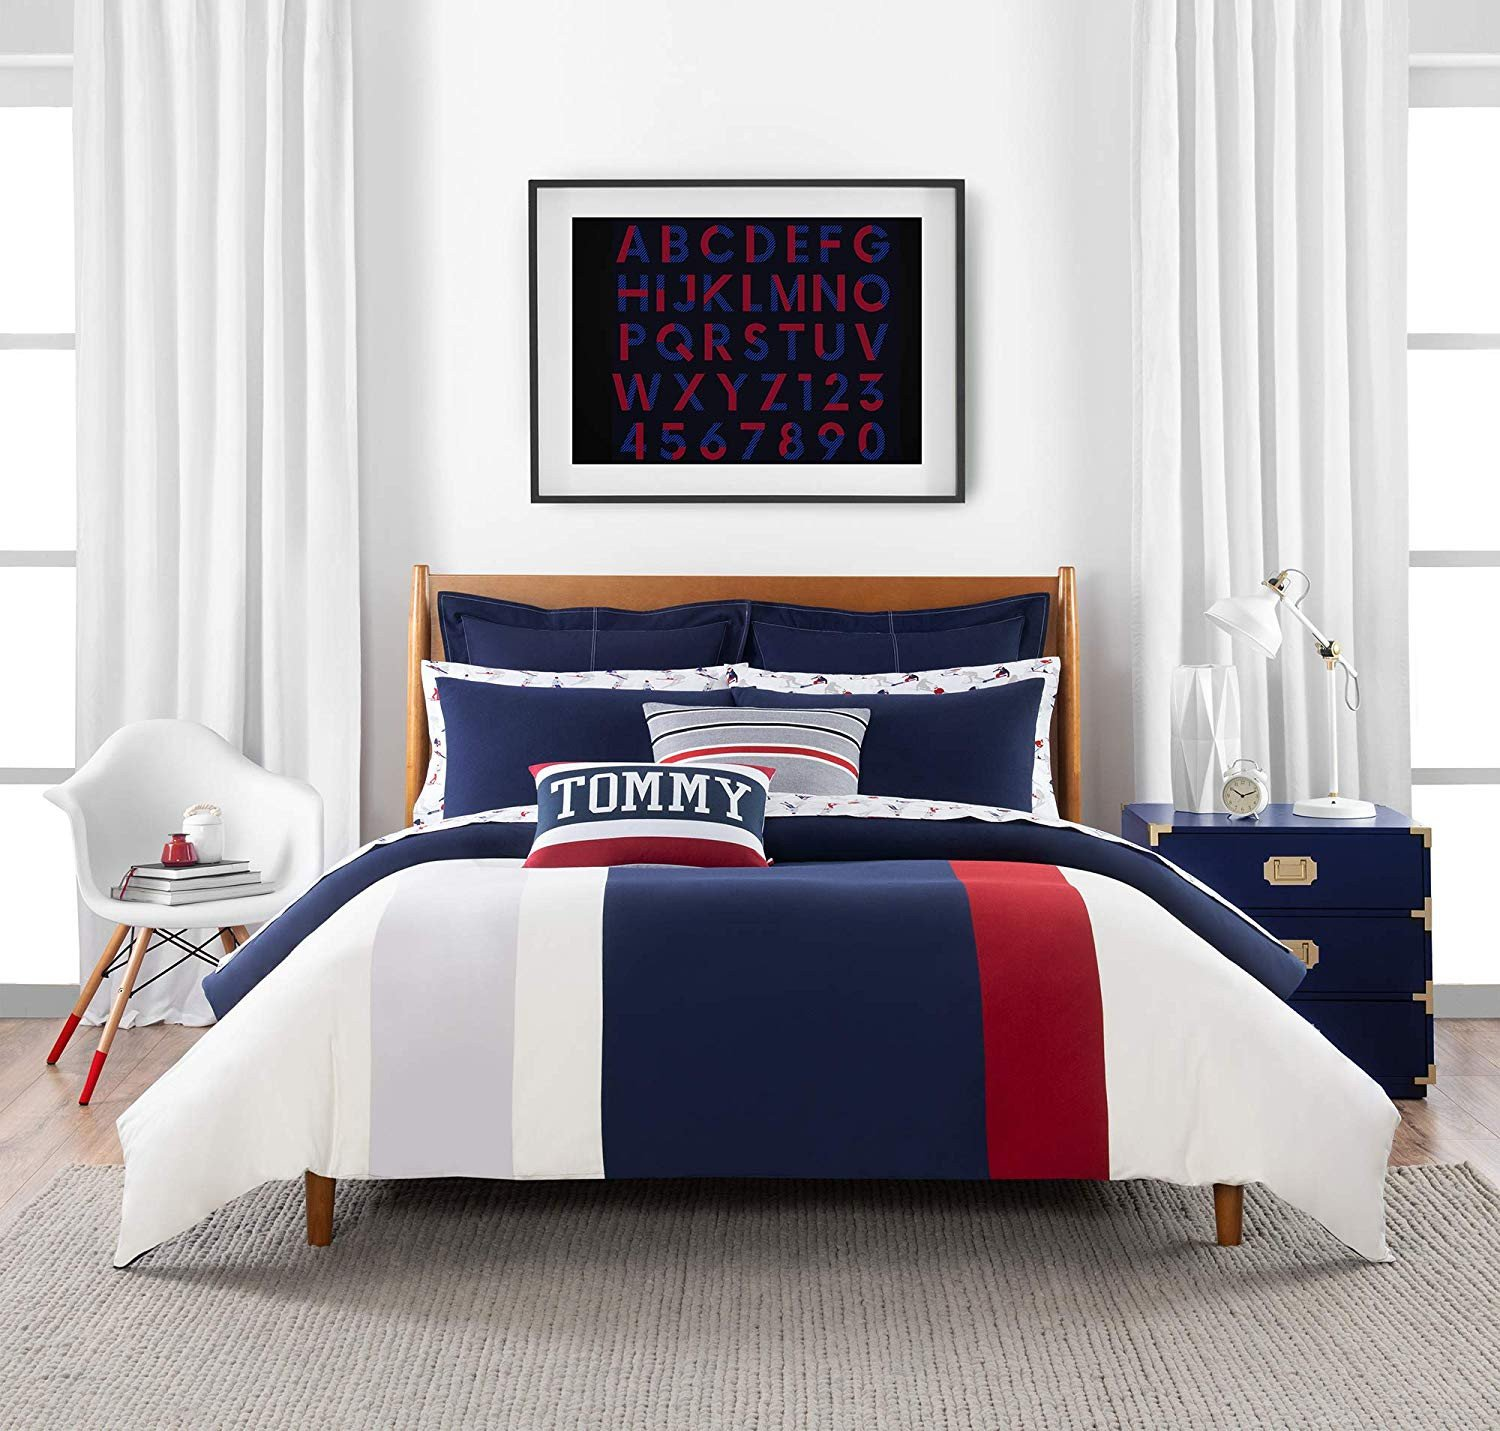 Best Bedroom Furniture Brands Fresh Amazon tommy Hilfiger Clash Of 85 Stripe Bedding